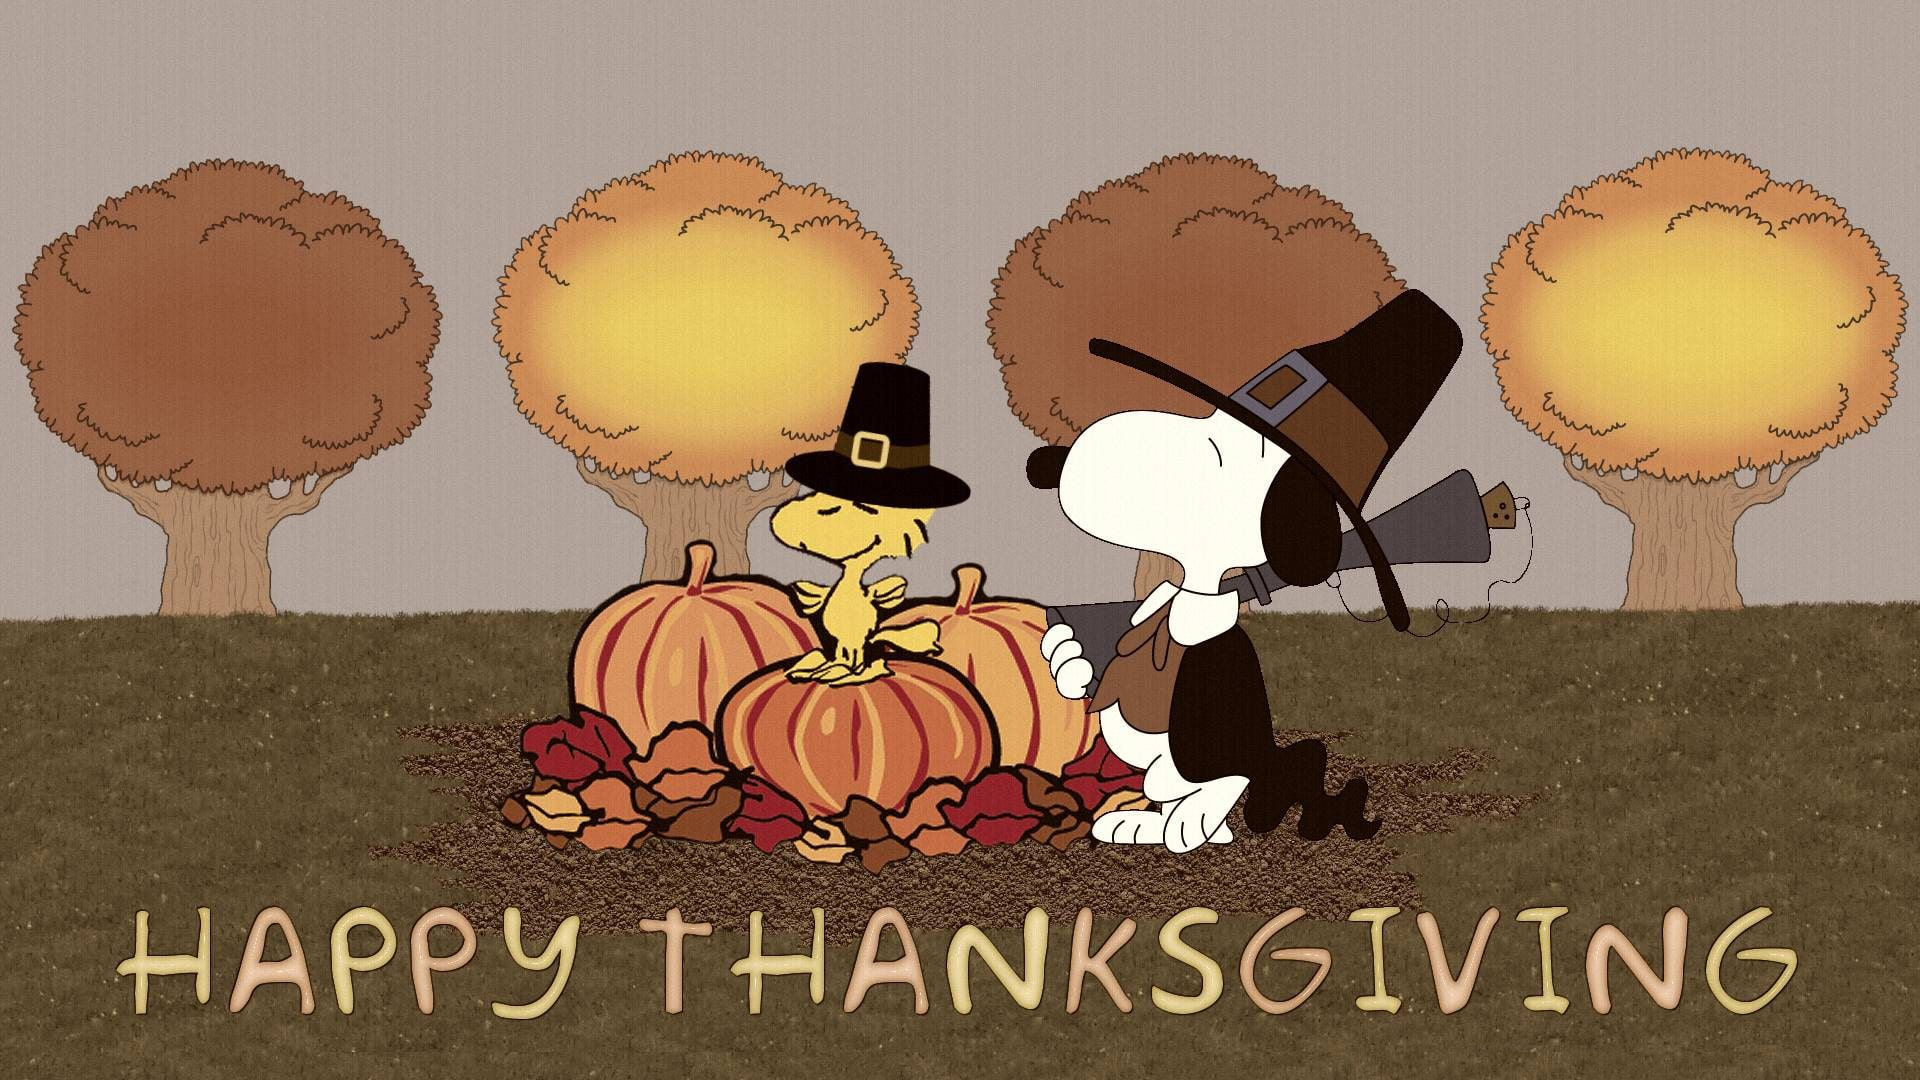 Snoopy Thanksgiving Wallpapers PC